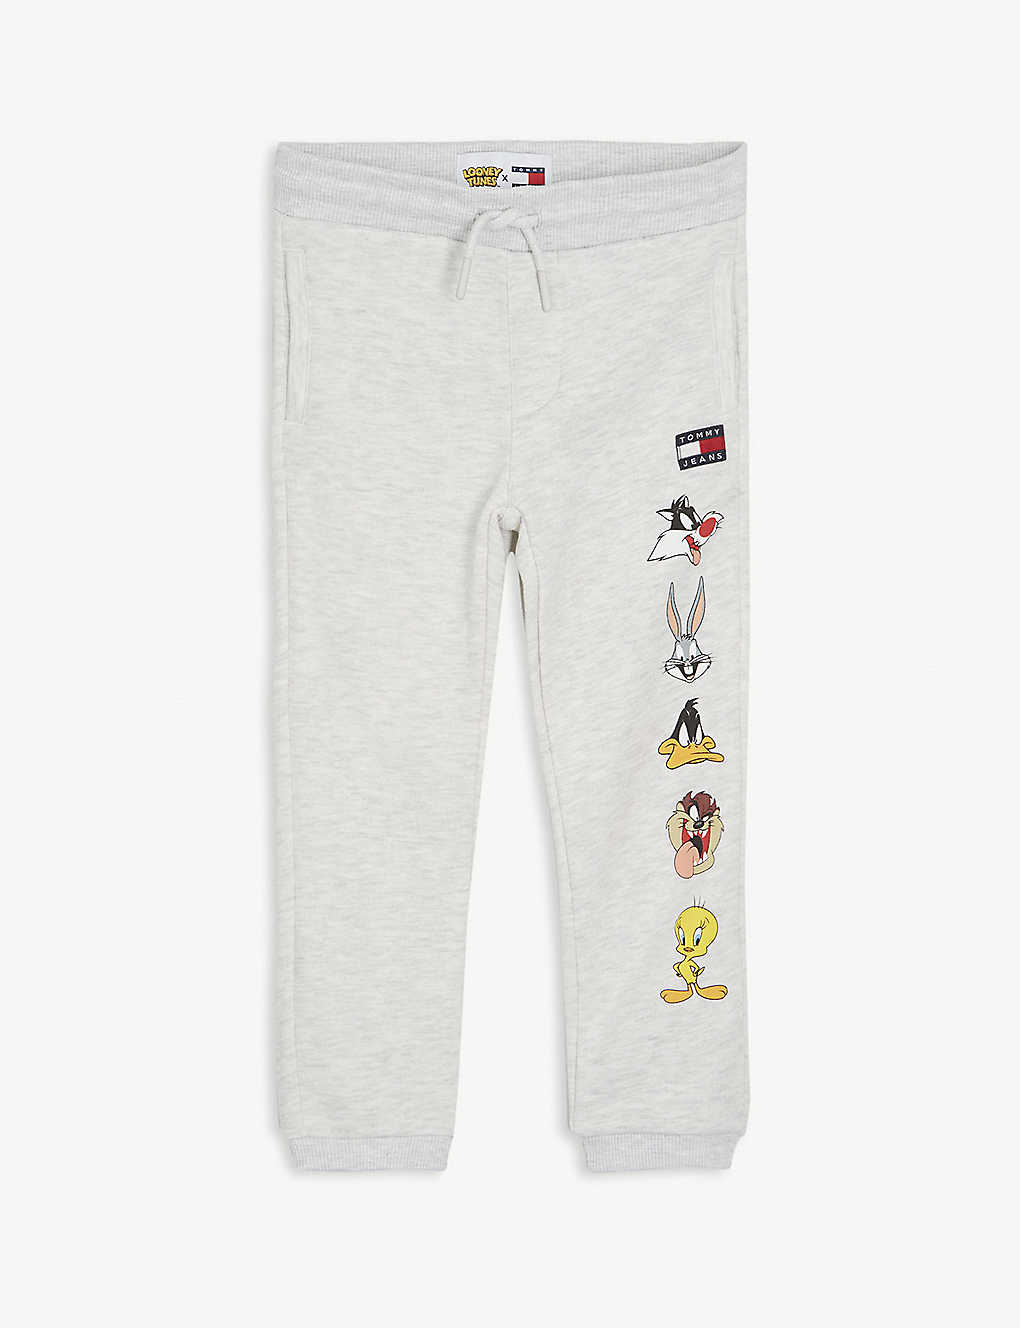 Tommy Hilfiger Tommy Jeans X Looney Tunes Cotton Blend Jogging Bottoms 4 12 Years Selfridges Com